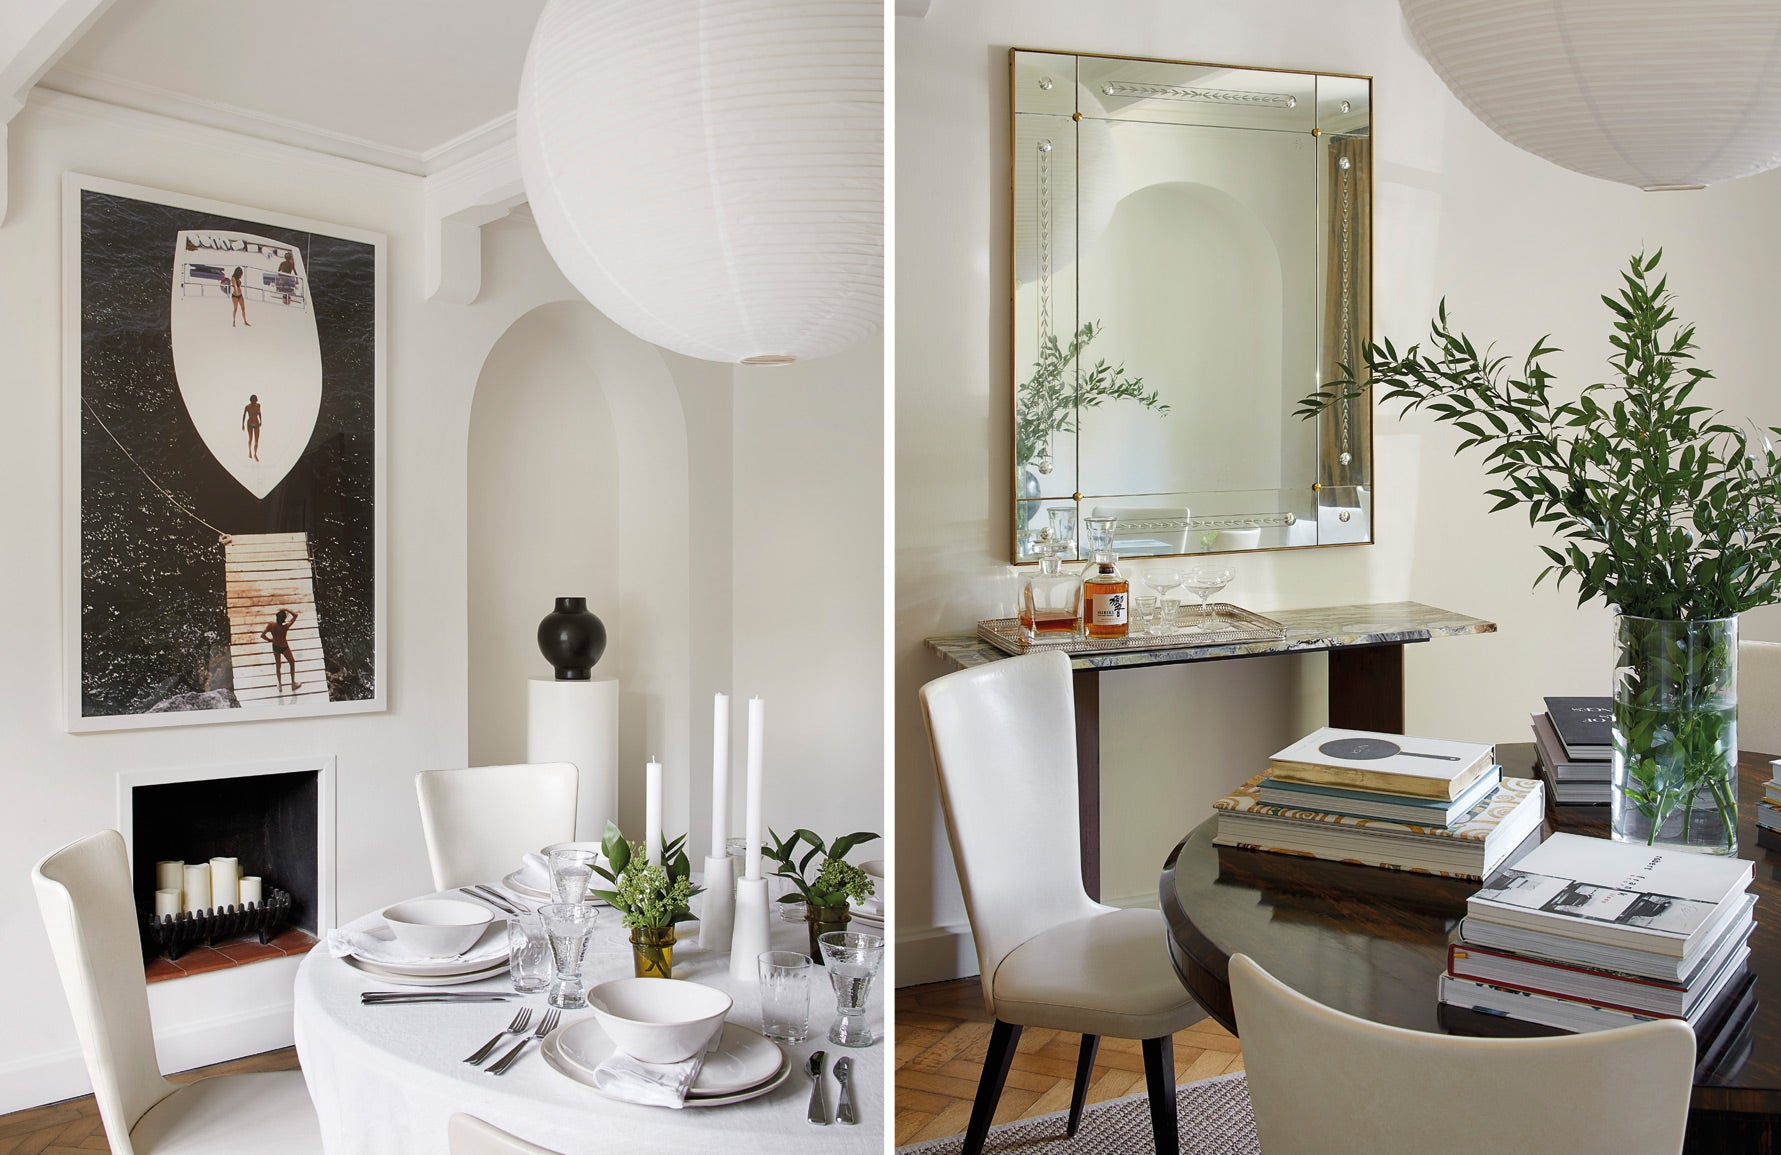 BradyWilliams | Emily Williams Home | Modern Dining Room | LuxDeco.com | The Luxurist